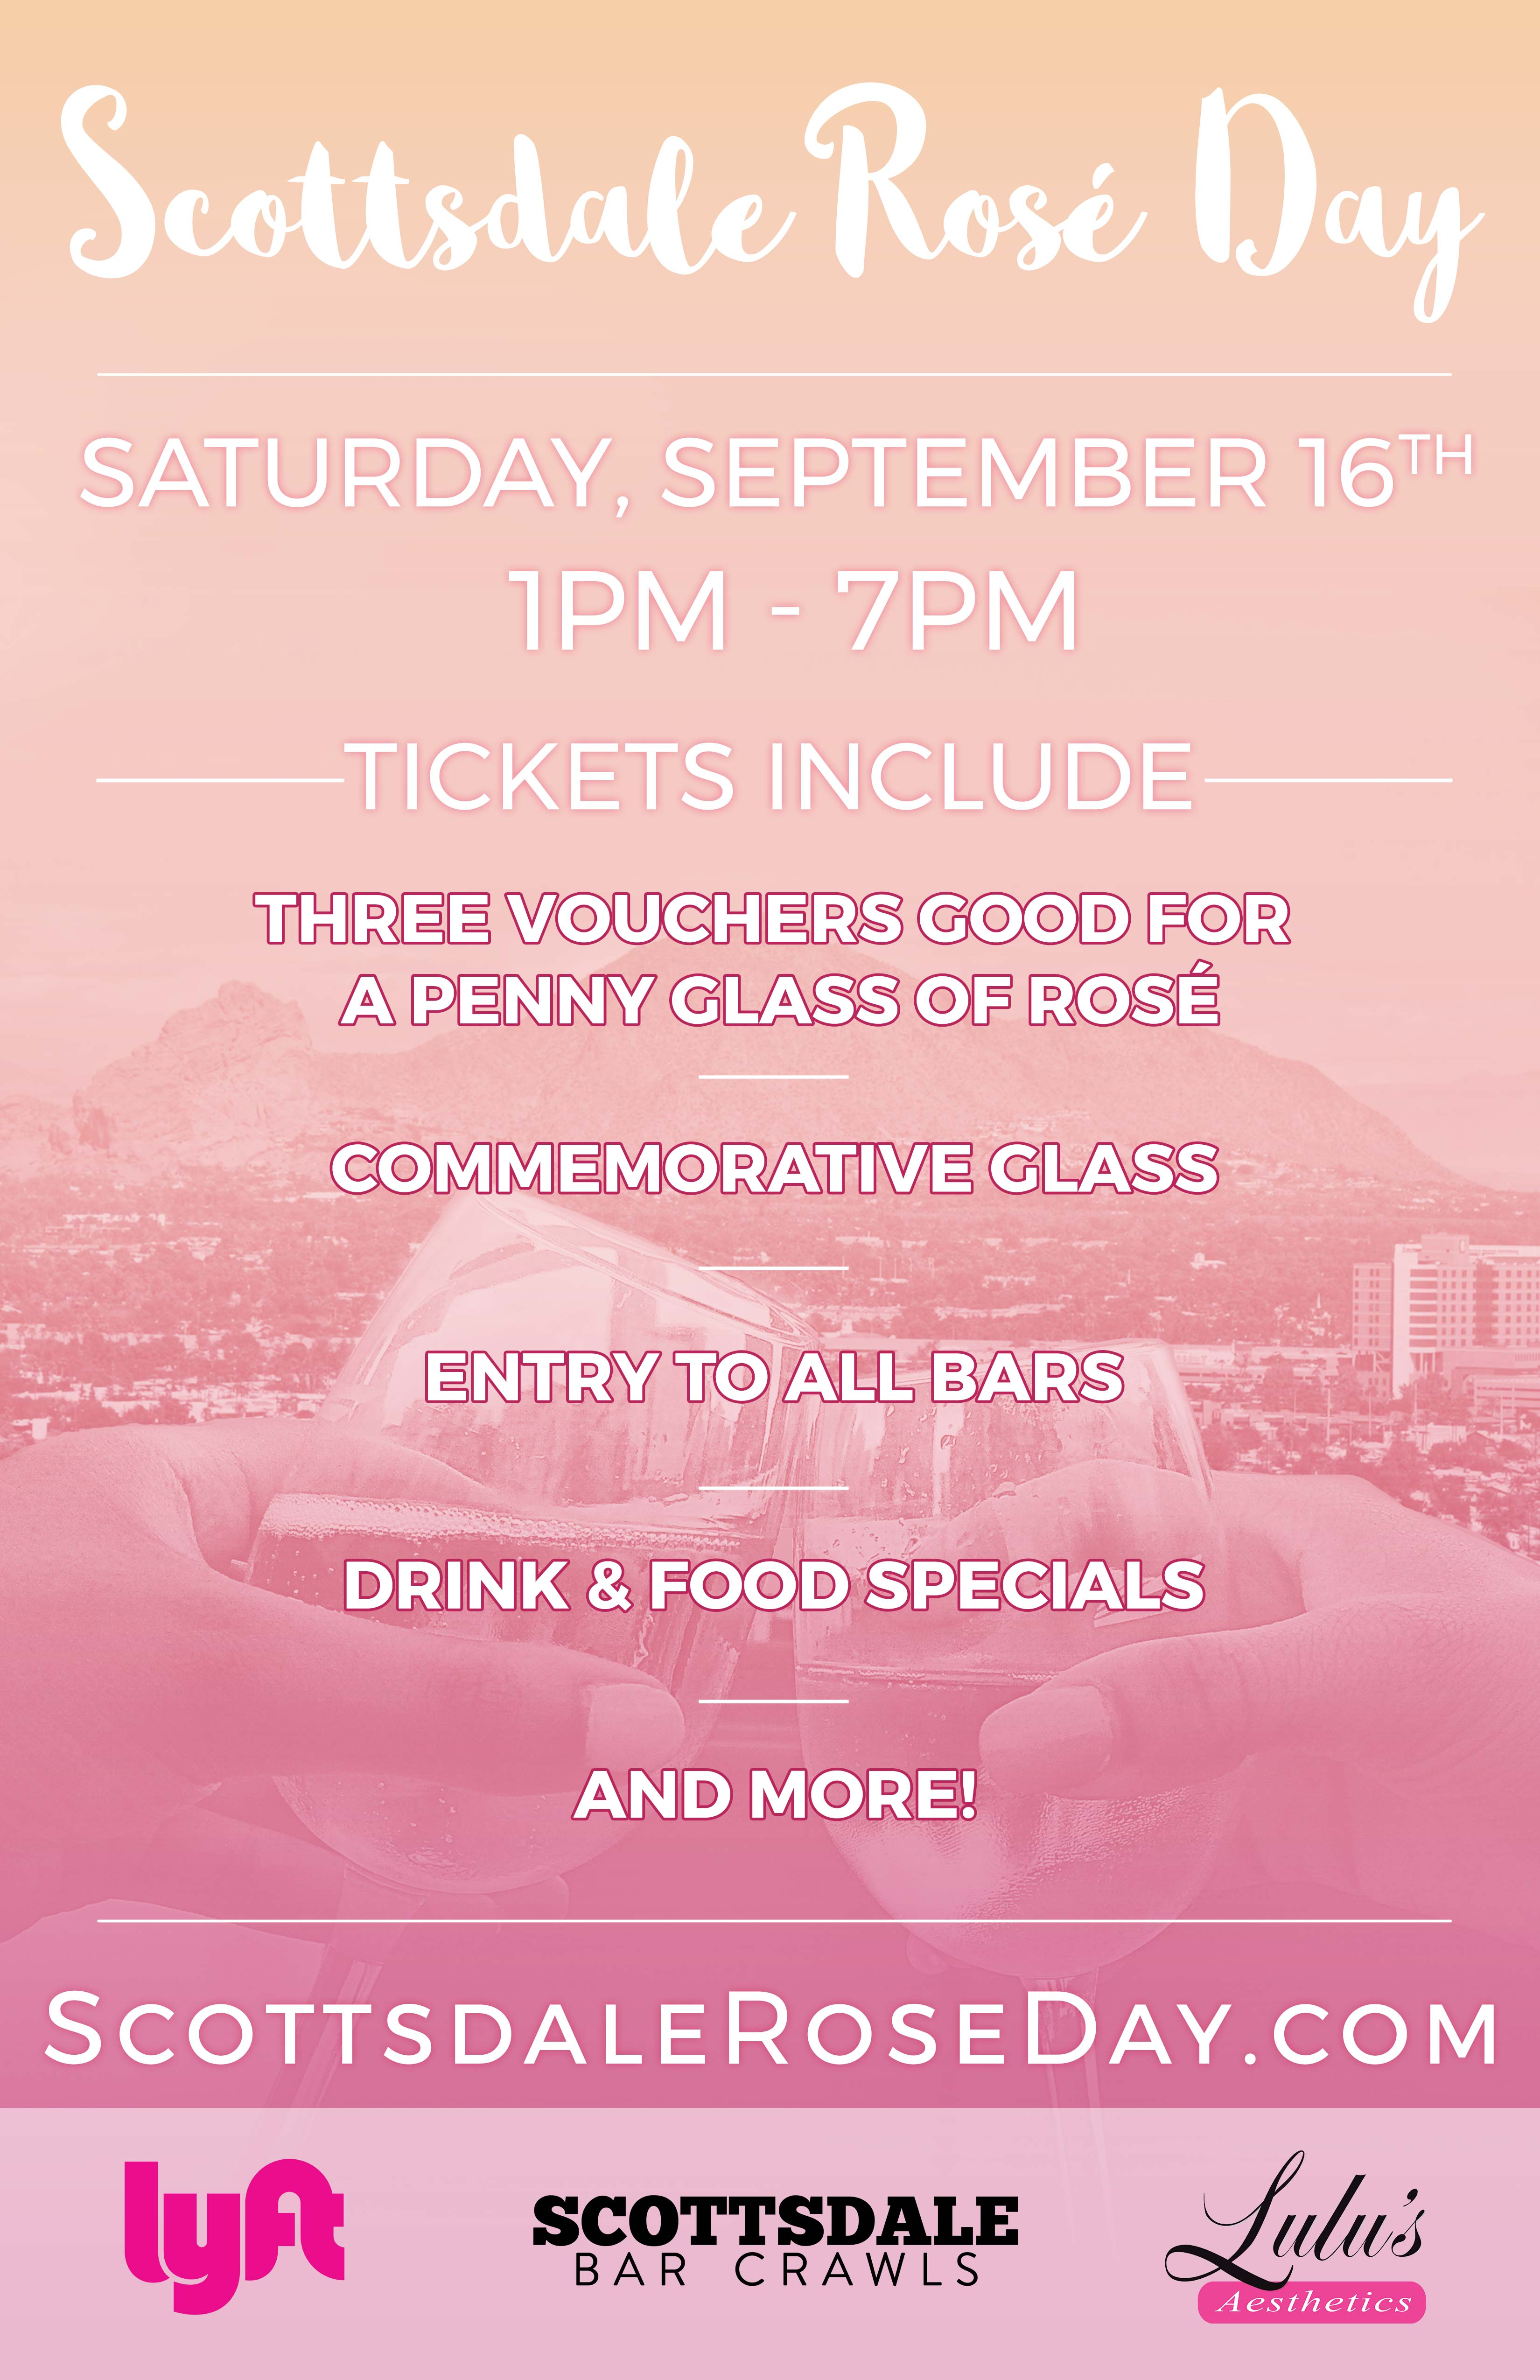 Scottsdale Rosé Day - An All Day Rose Party - Tickets include: An Official Scottsdale Rosé Day glass, Three 1-penny ($.01) glasses of Rosé (each crawler will receive 3 coupons, each good for a 1-penny glass of Rosé), Admission to all participating venues, Access to Amazing Drink Specials & More!